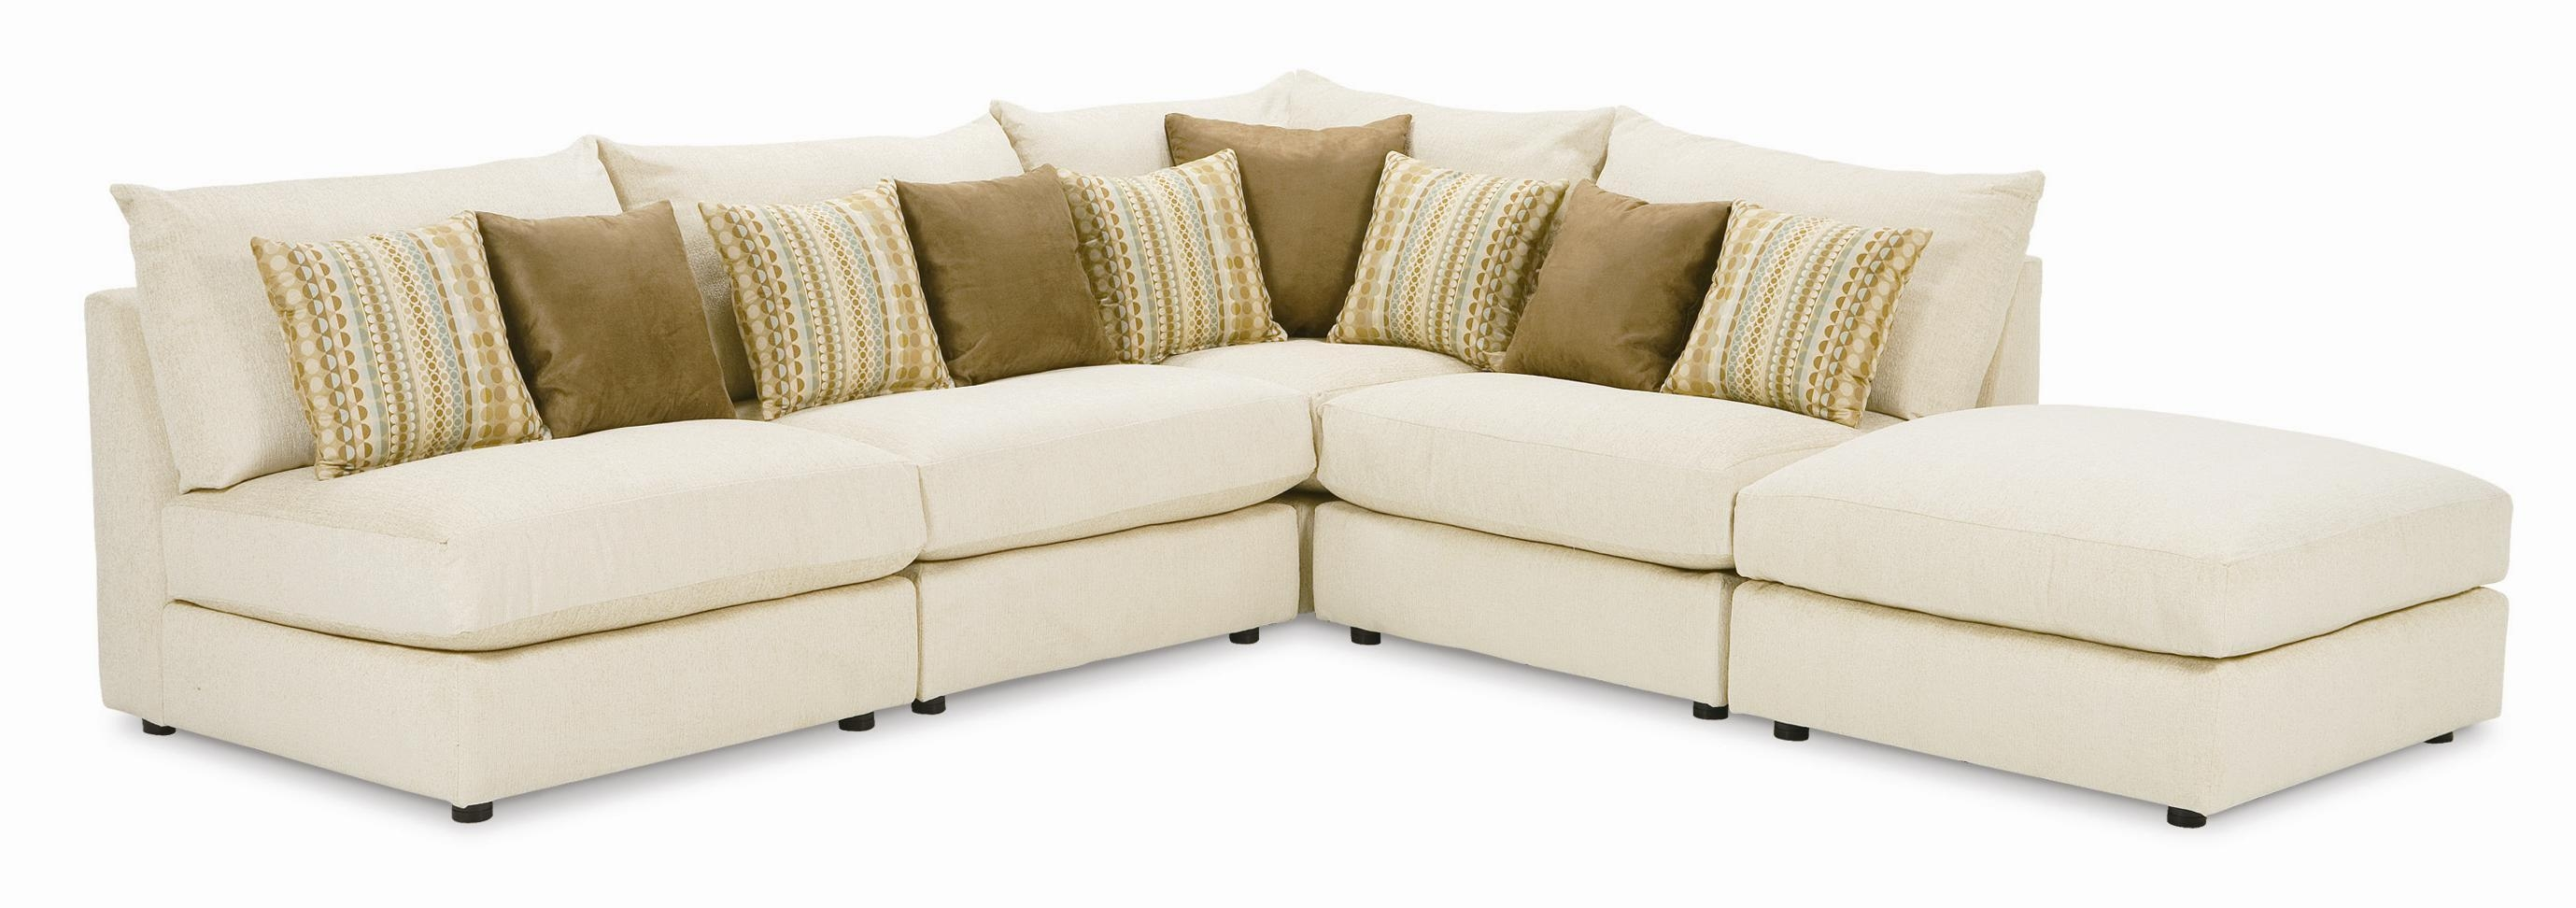 Rowe Tempo Five Piece Armless Sectional Sofa – Ahfa – Sofa Throughout Individual Piece Sectional Sofas (Image 12 of 20)